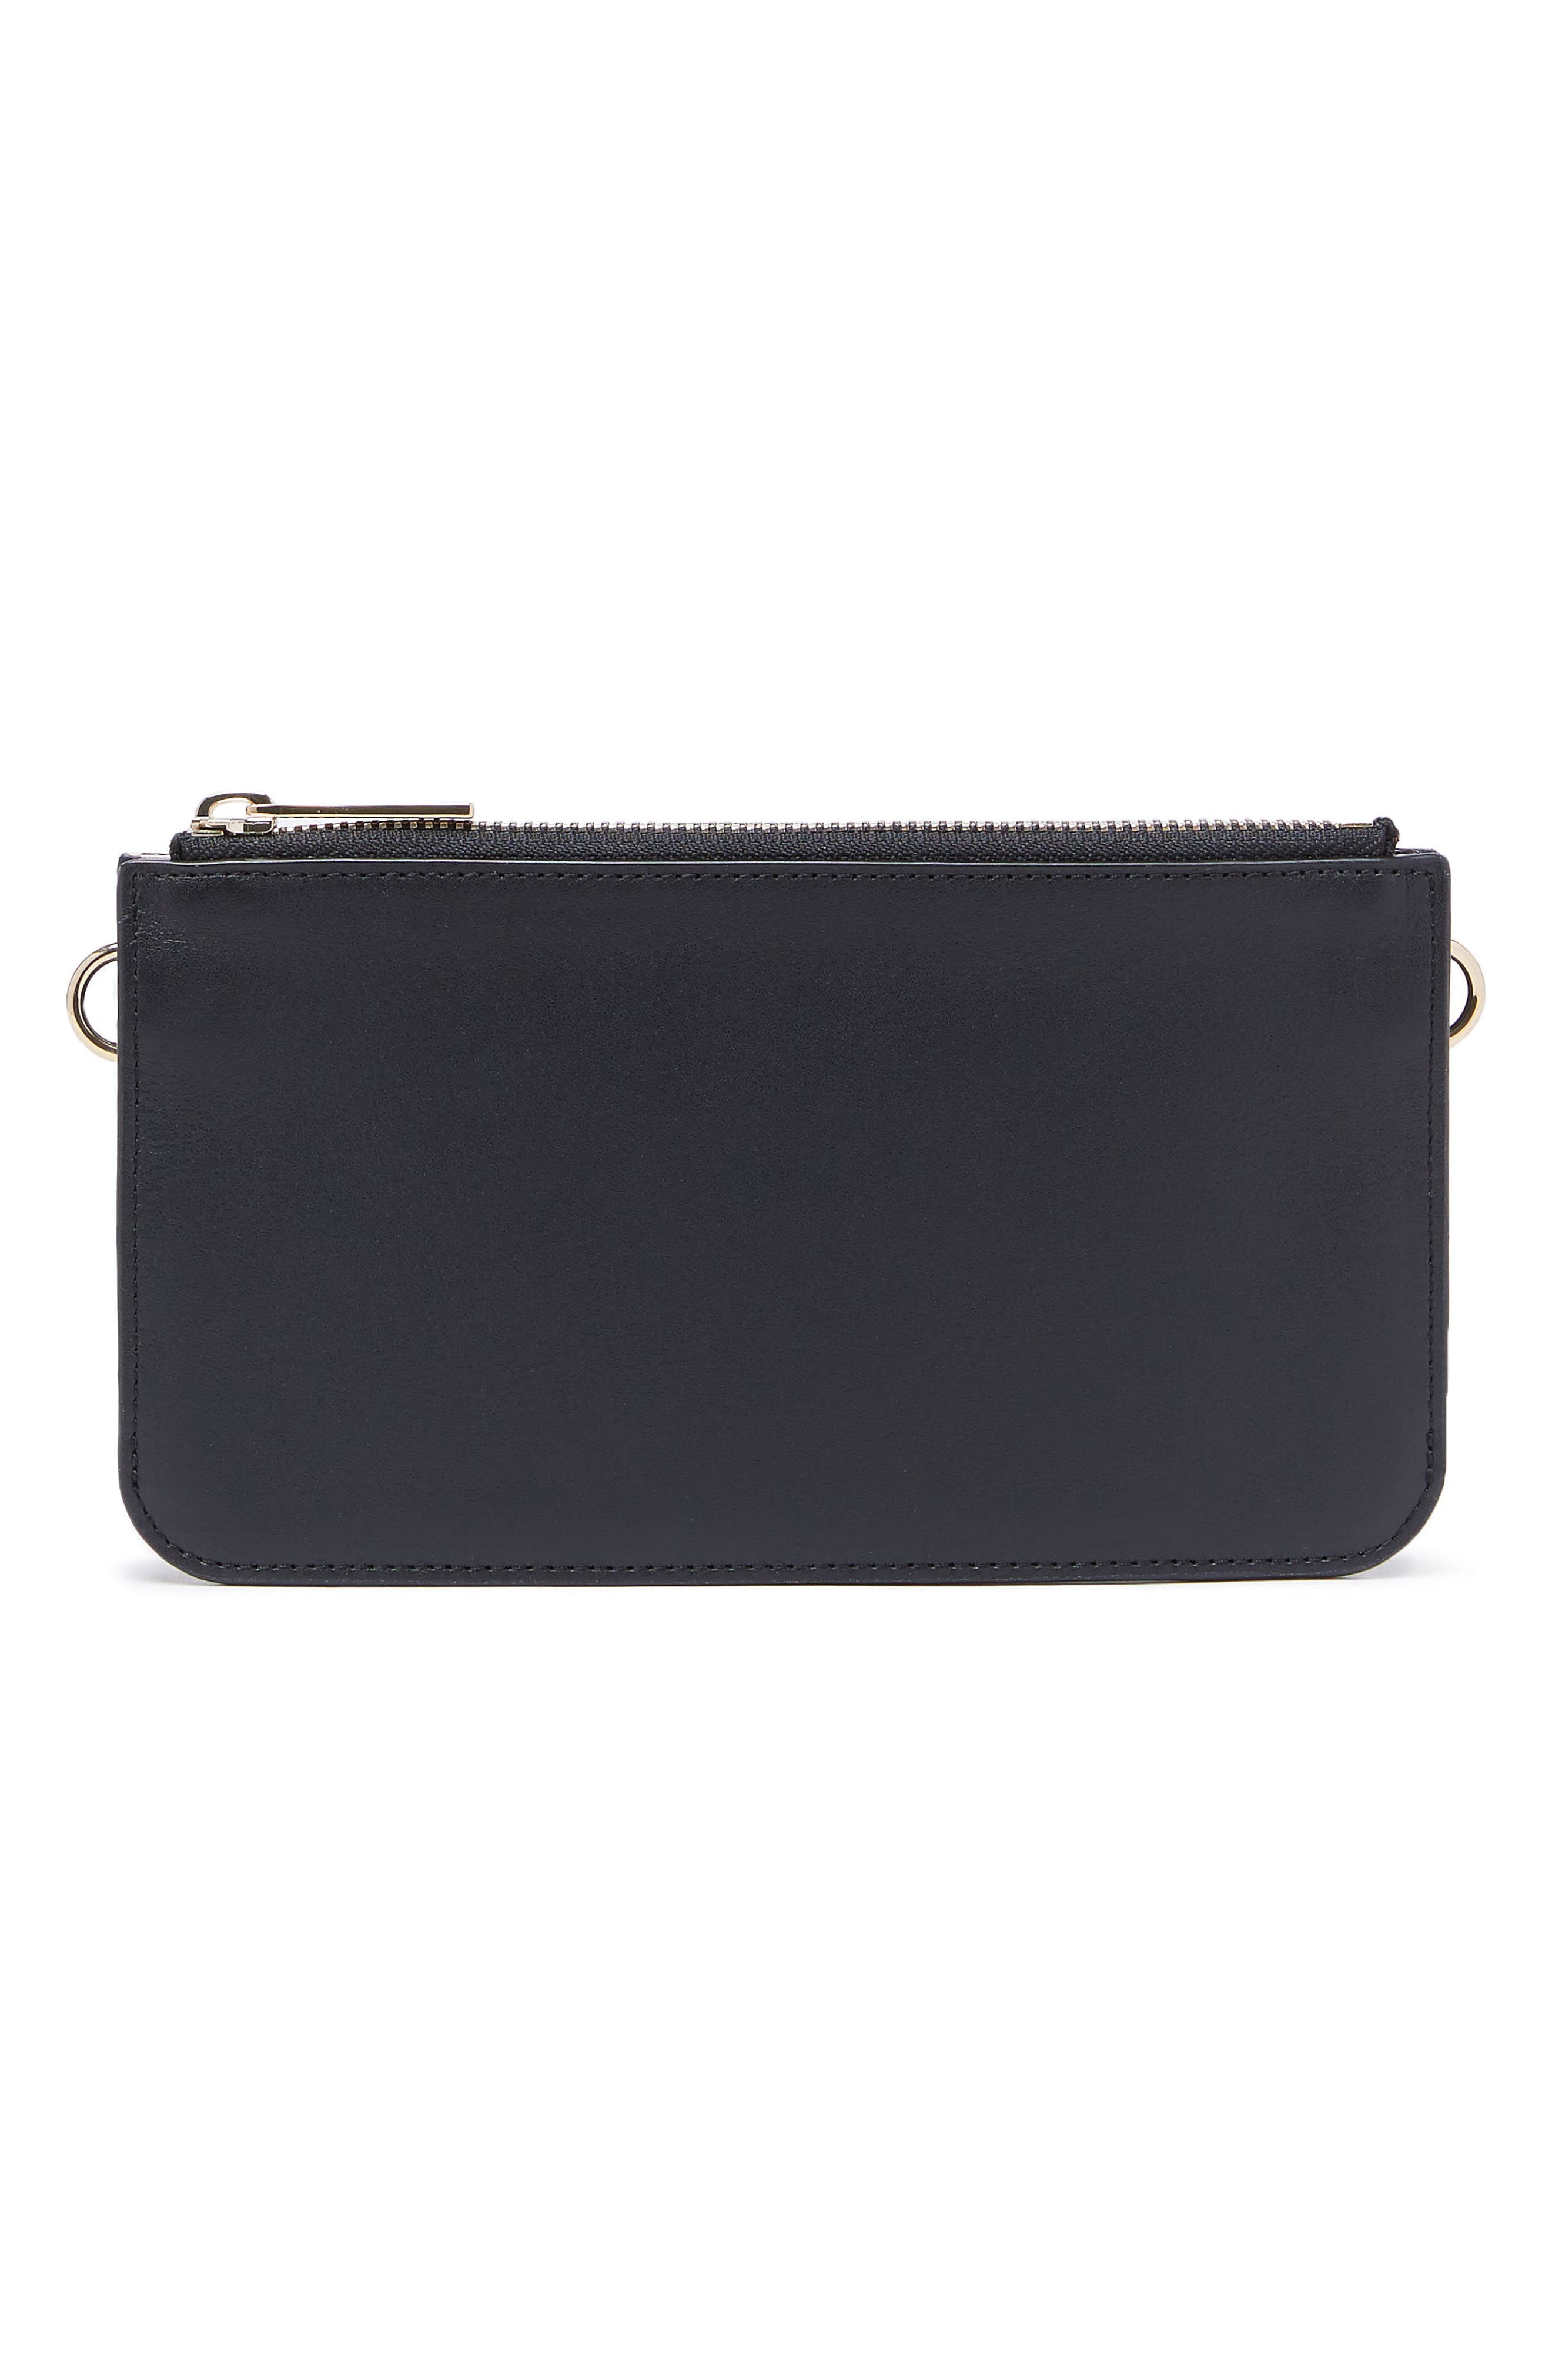 Leather Zip Pouch,                             Main thumbnail 1, color,                             001